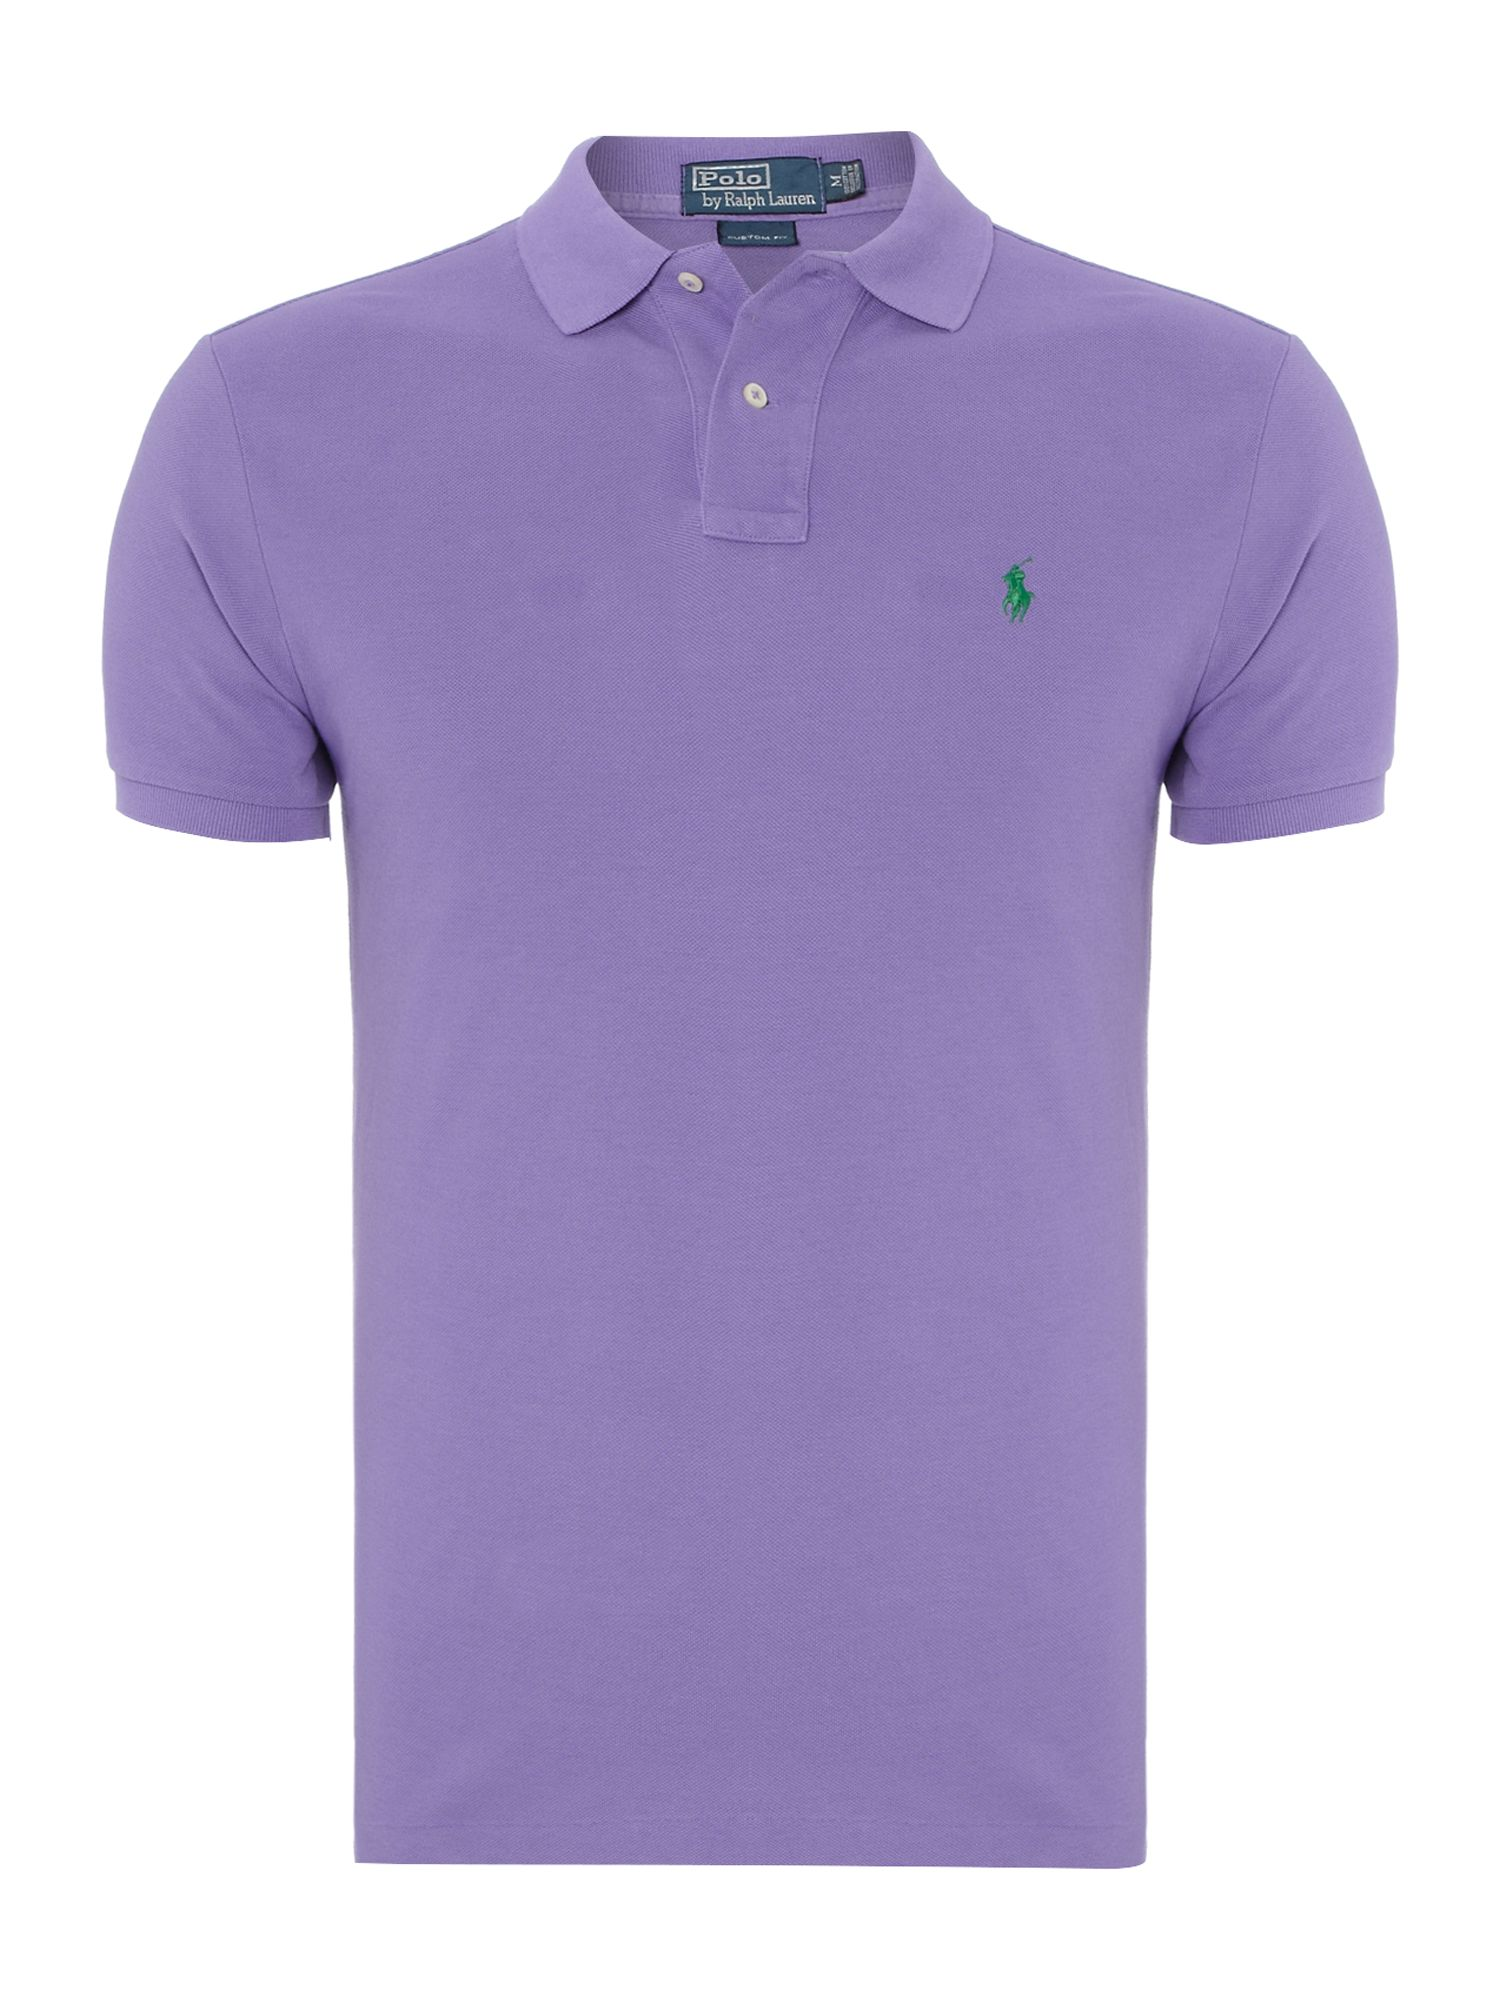 Custom fit mesh polo shirt